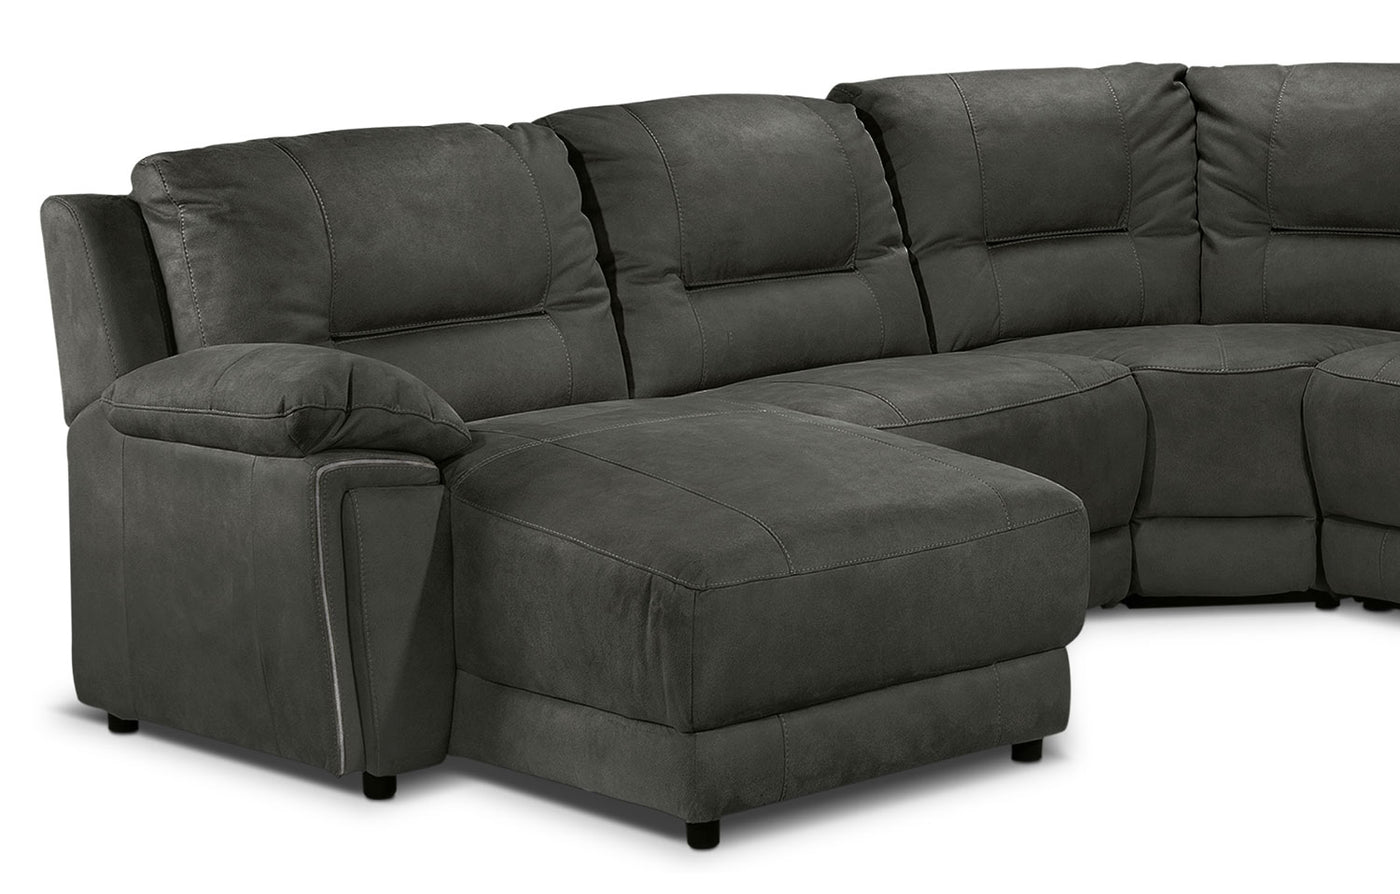 Pasadena 6 Piece Reclining Sectional With Left Facing Chaise Dark